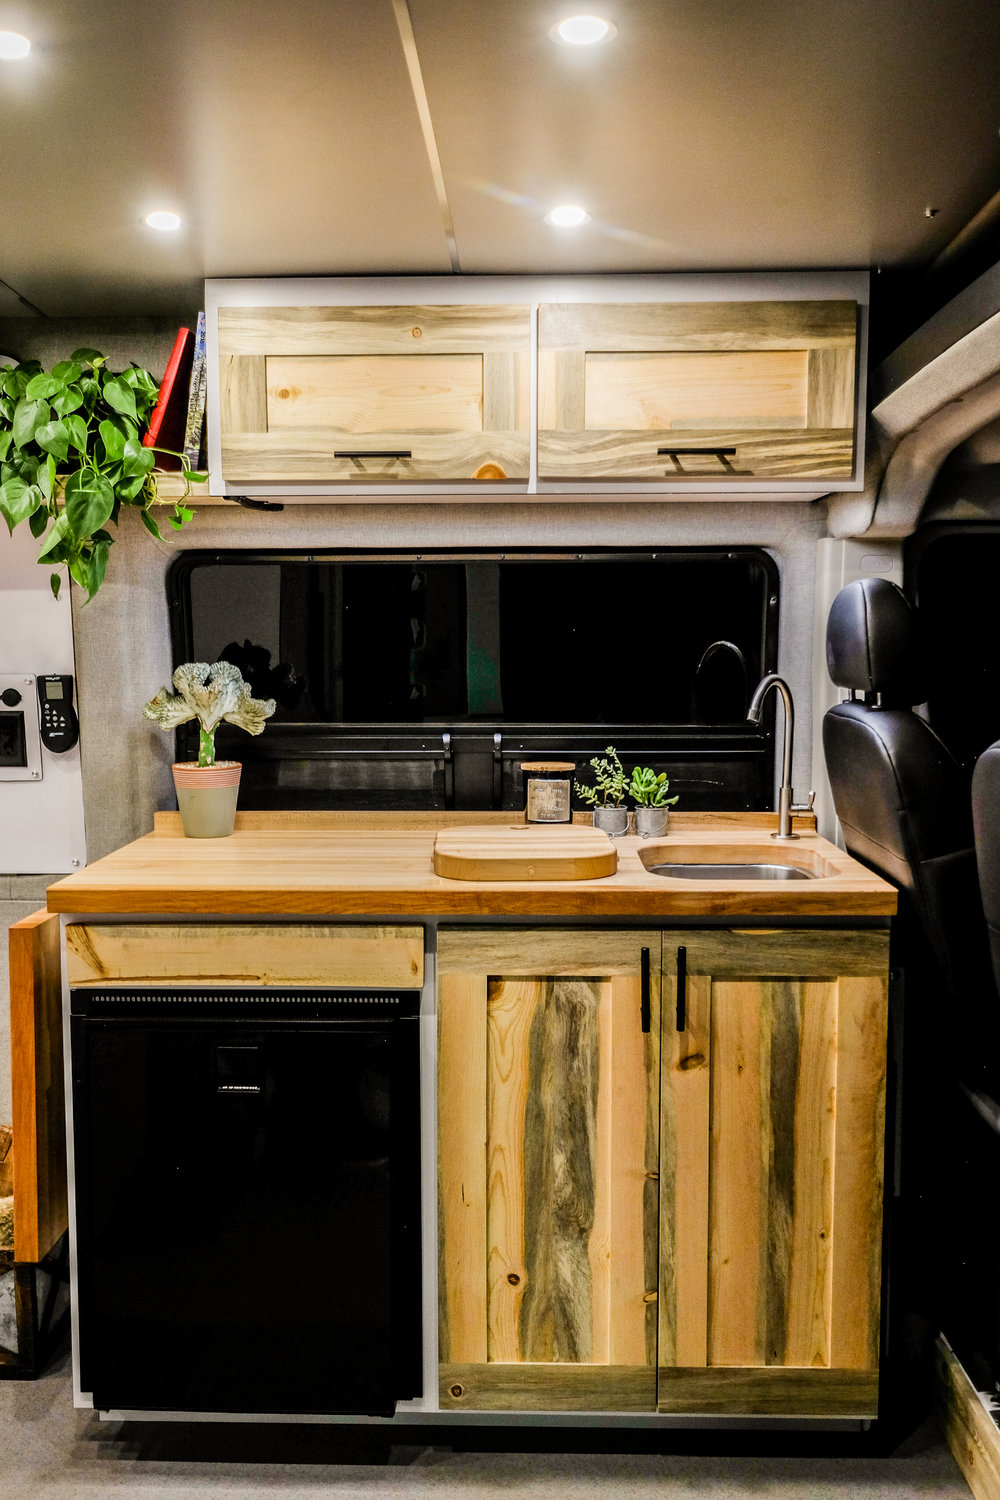 The kitchenette includes an  Isotherm Cruise 85 Elegance  refrigerator, a double burner cooktop and a butcher block counter.